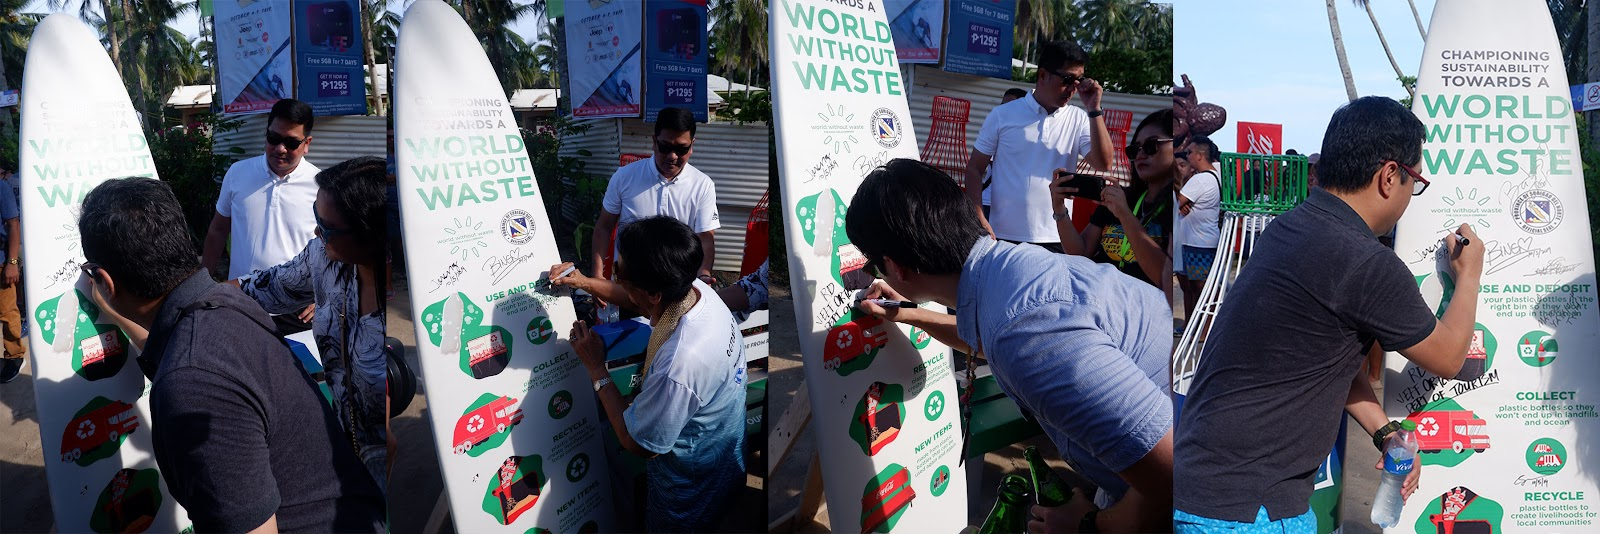 Envisioning a World Without Waste, One Bottle at a Time